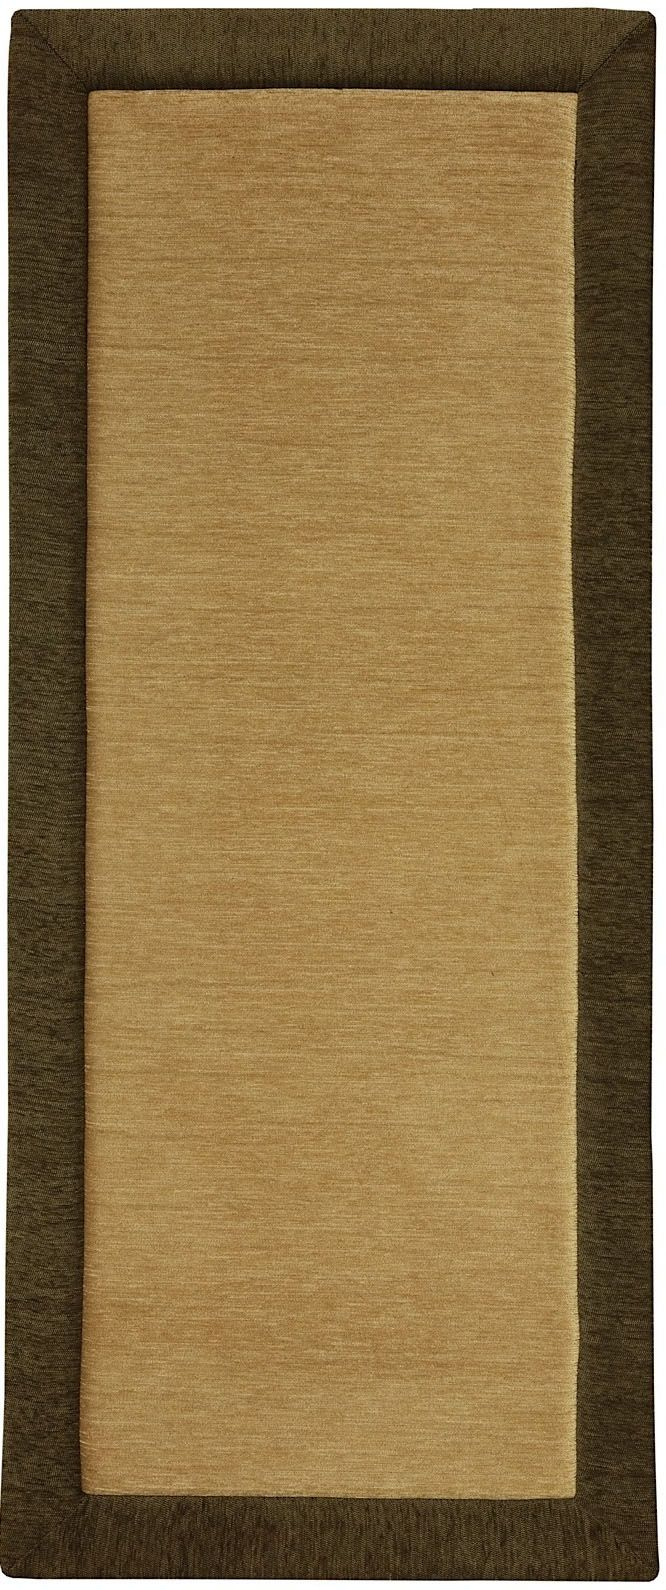 mohawk solid chenille memory foam contemporary area rug collection